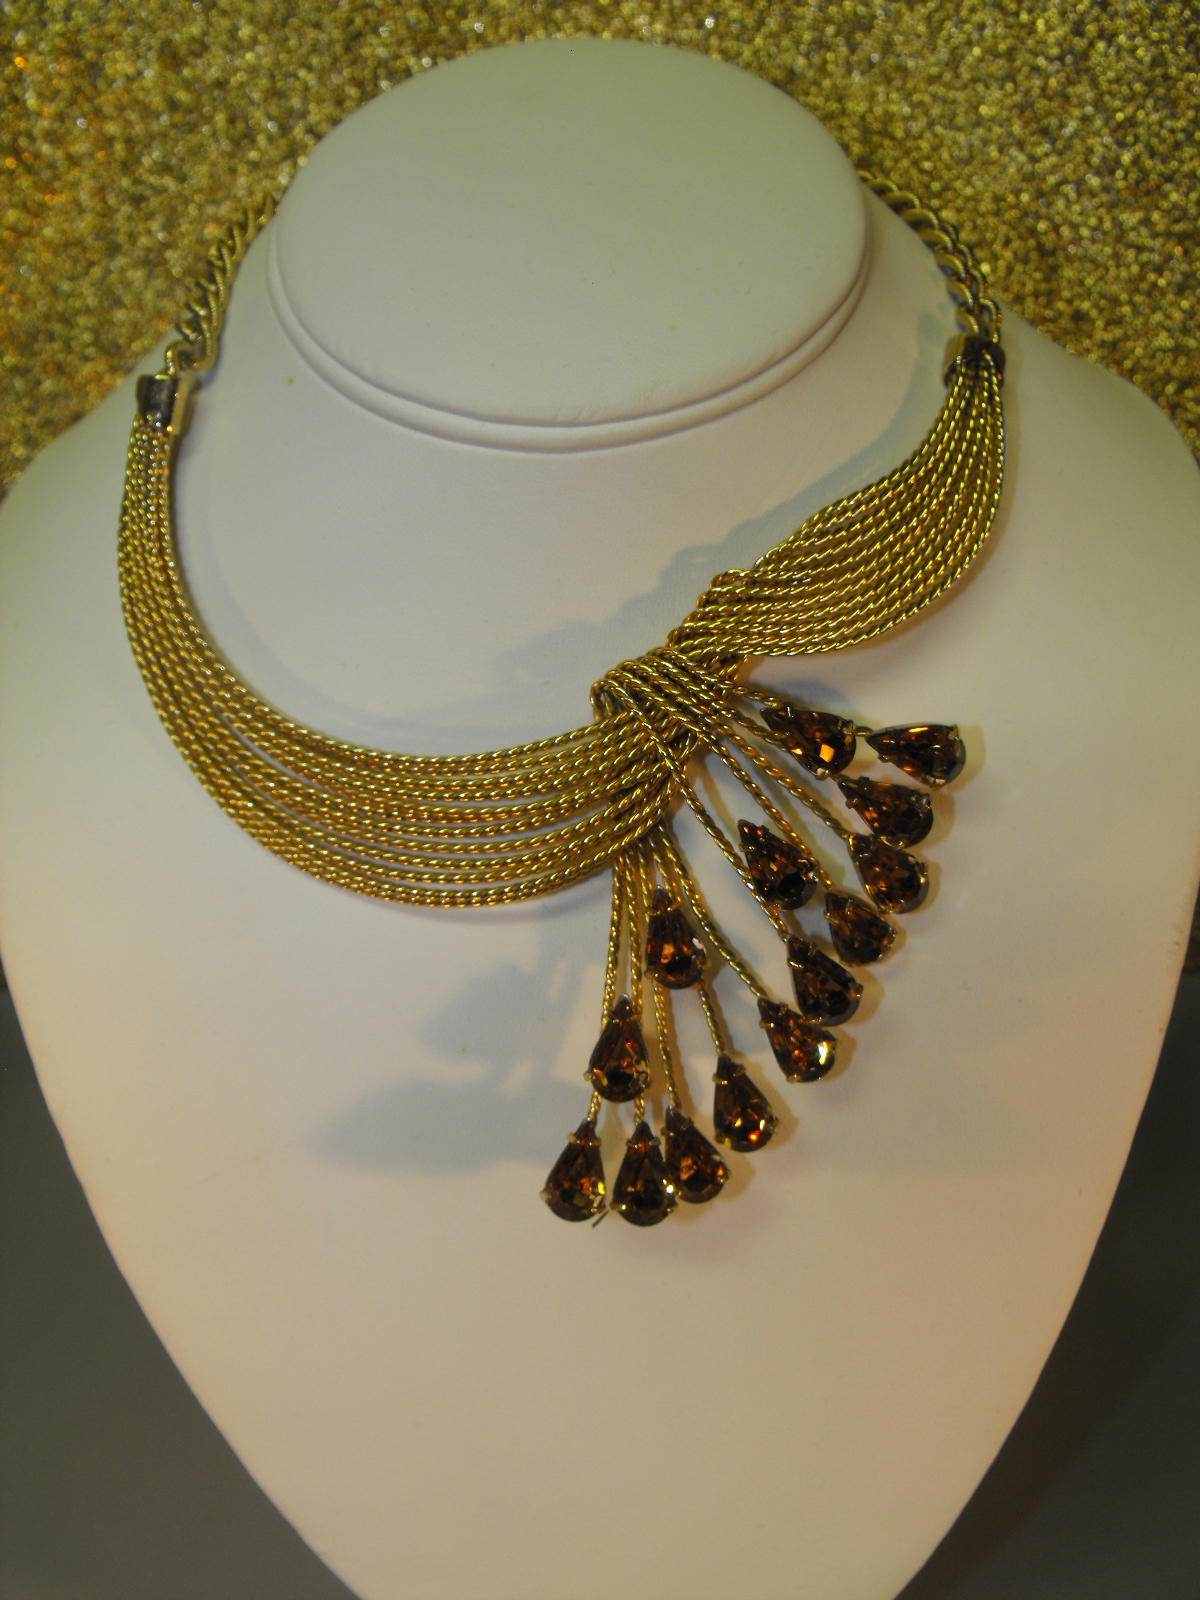 Vintage Costume Jewelry By Napier Clive S Unique Jewelry